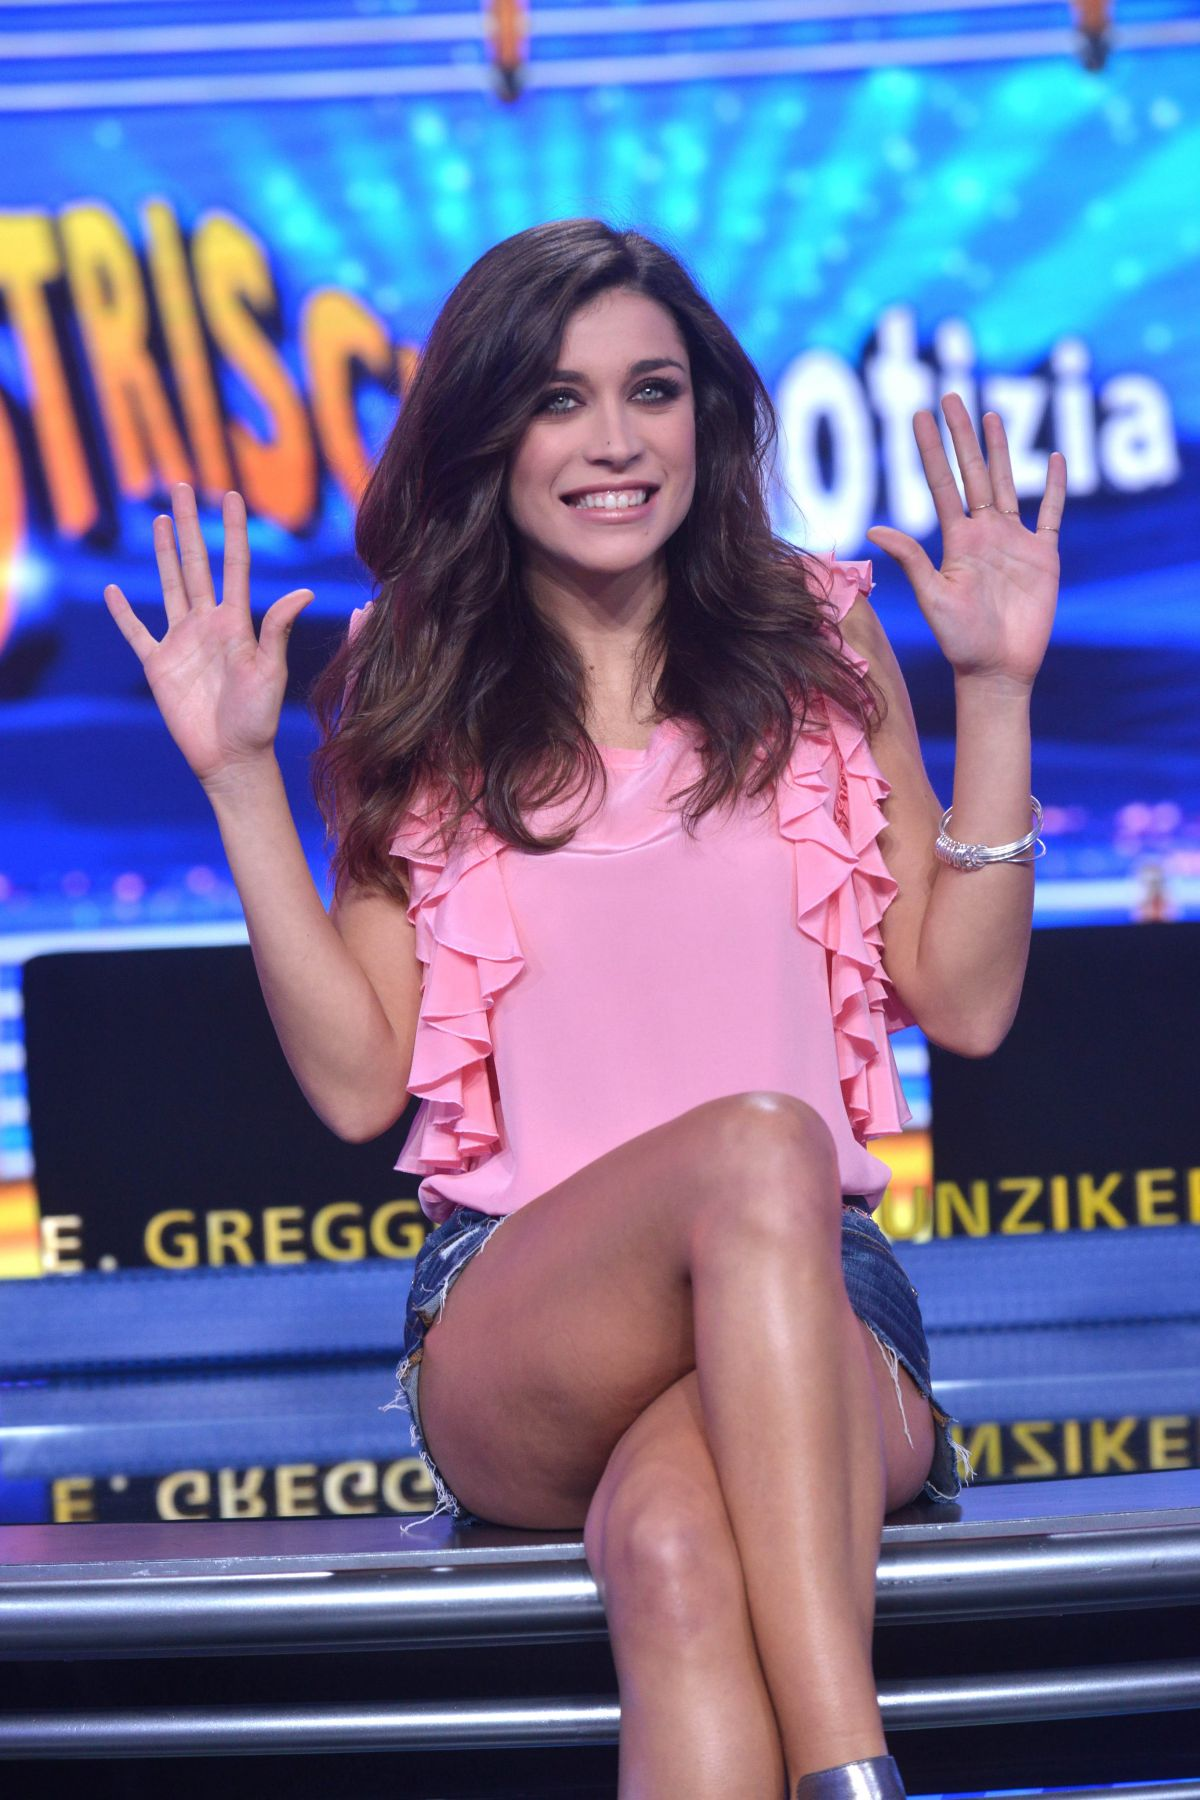 LUDOVICA FRASCA at Strip The News Photocall in Milan 10/26/2015